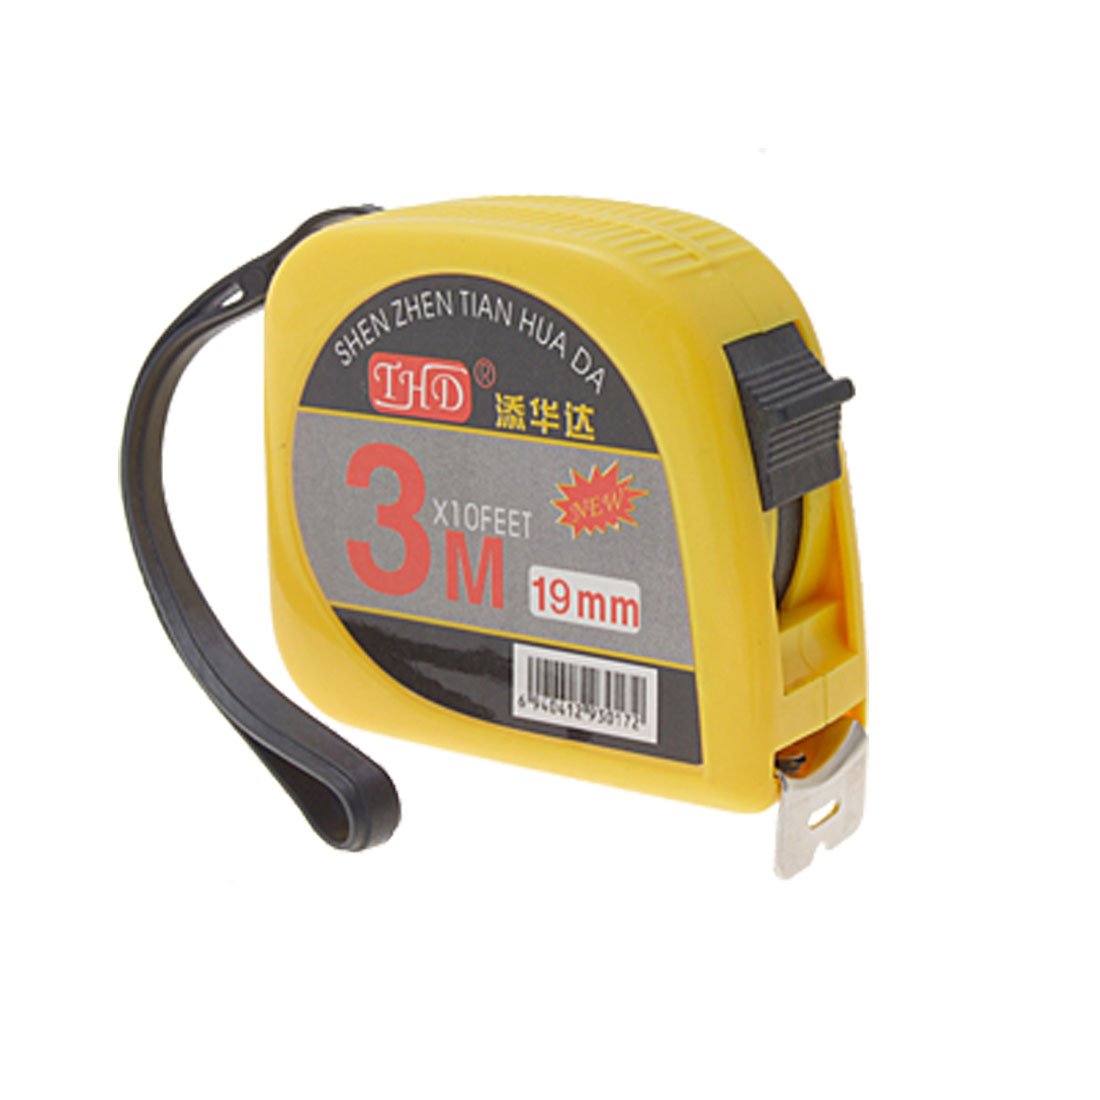 Yellow-Black-Plastic-Housing-3-Meters-Tape-Measure-Tool